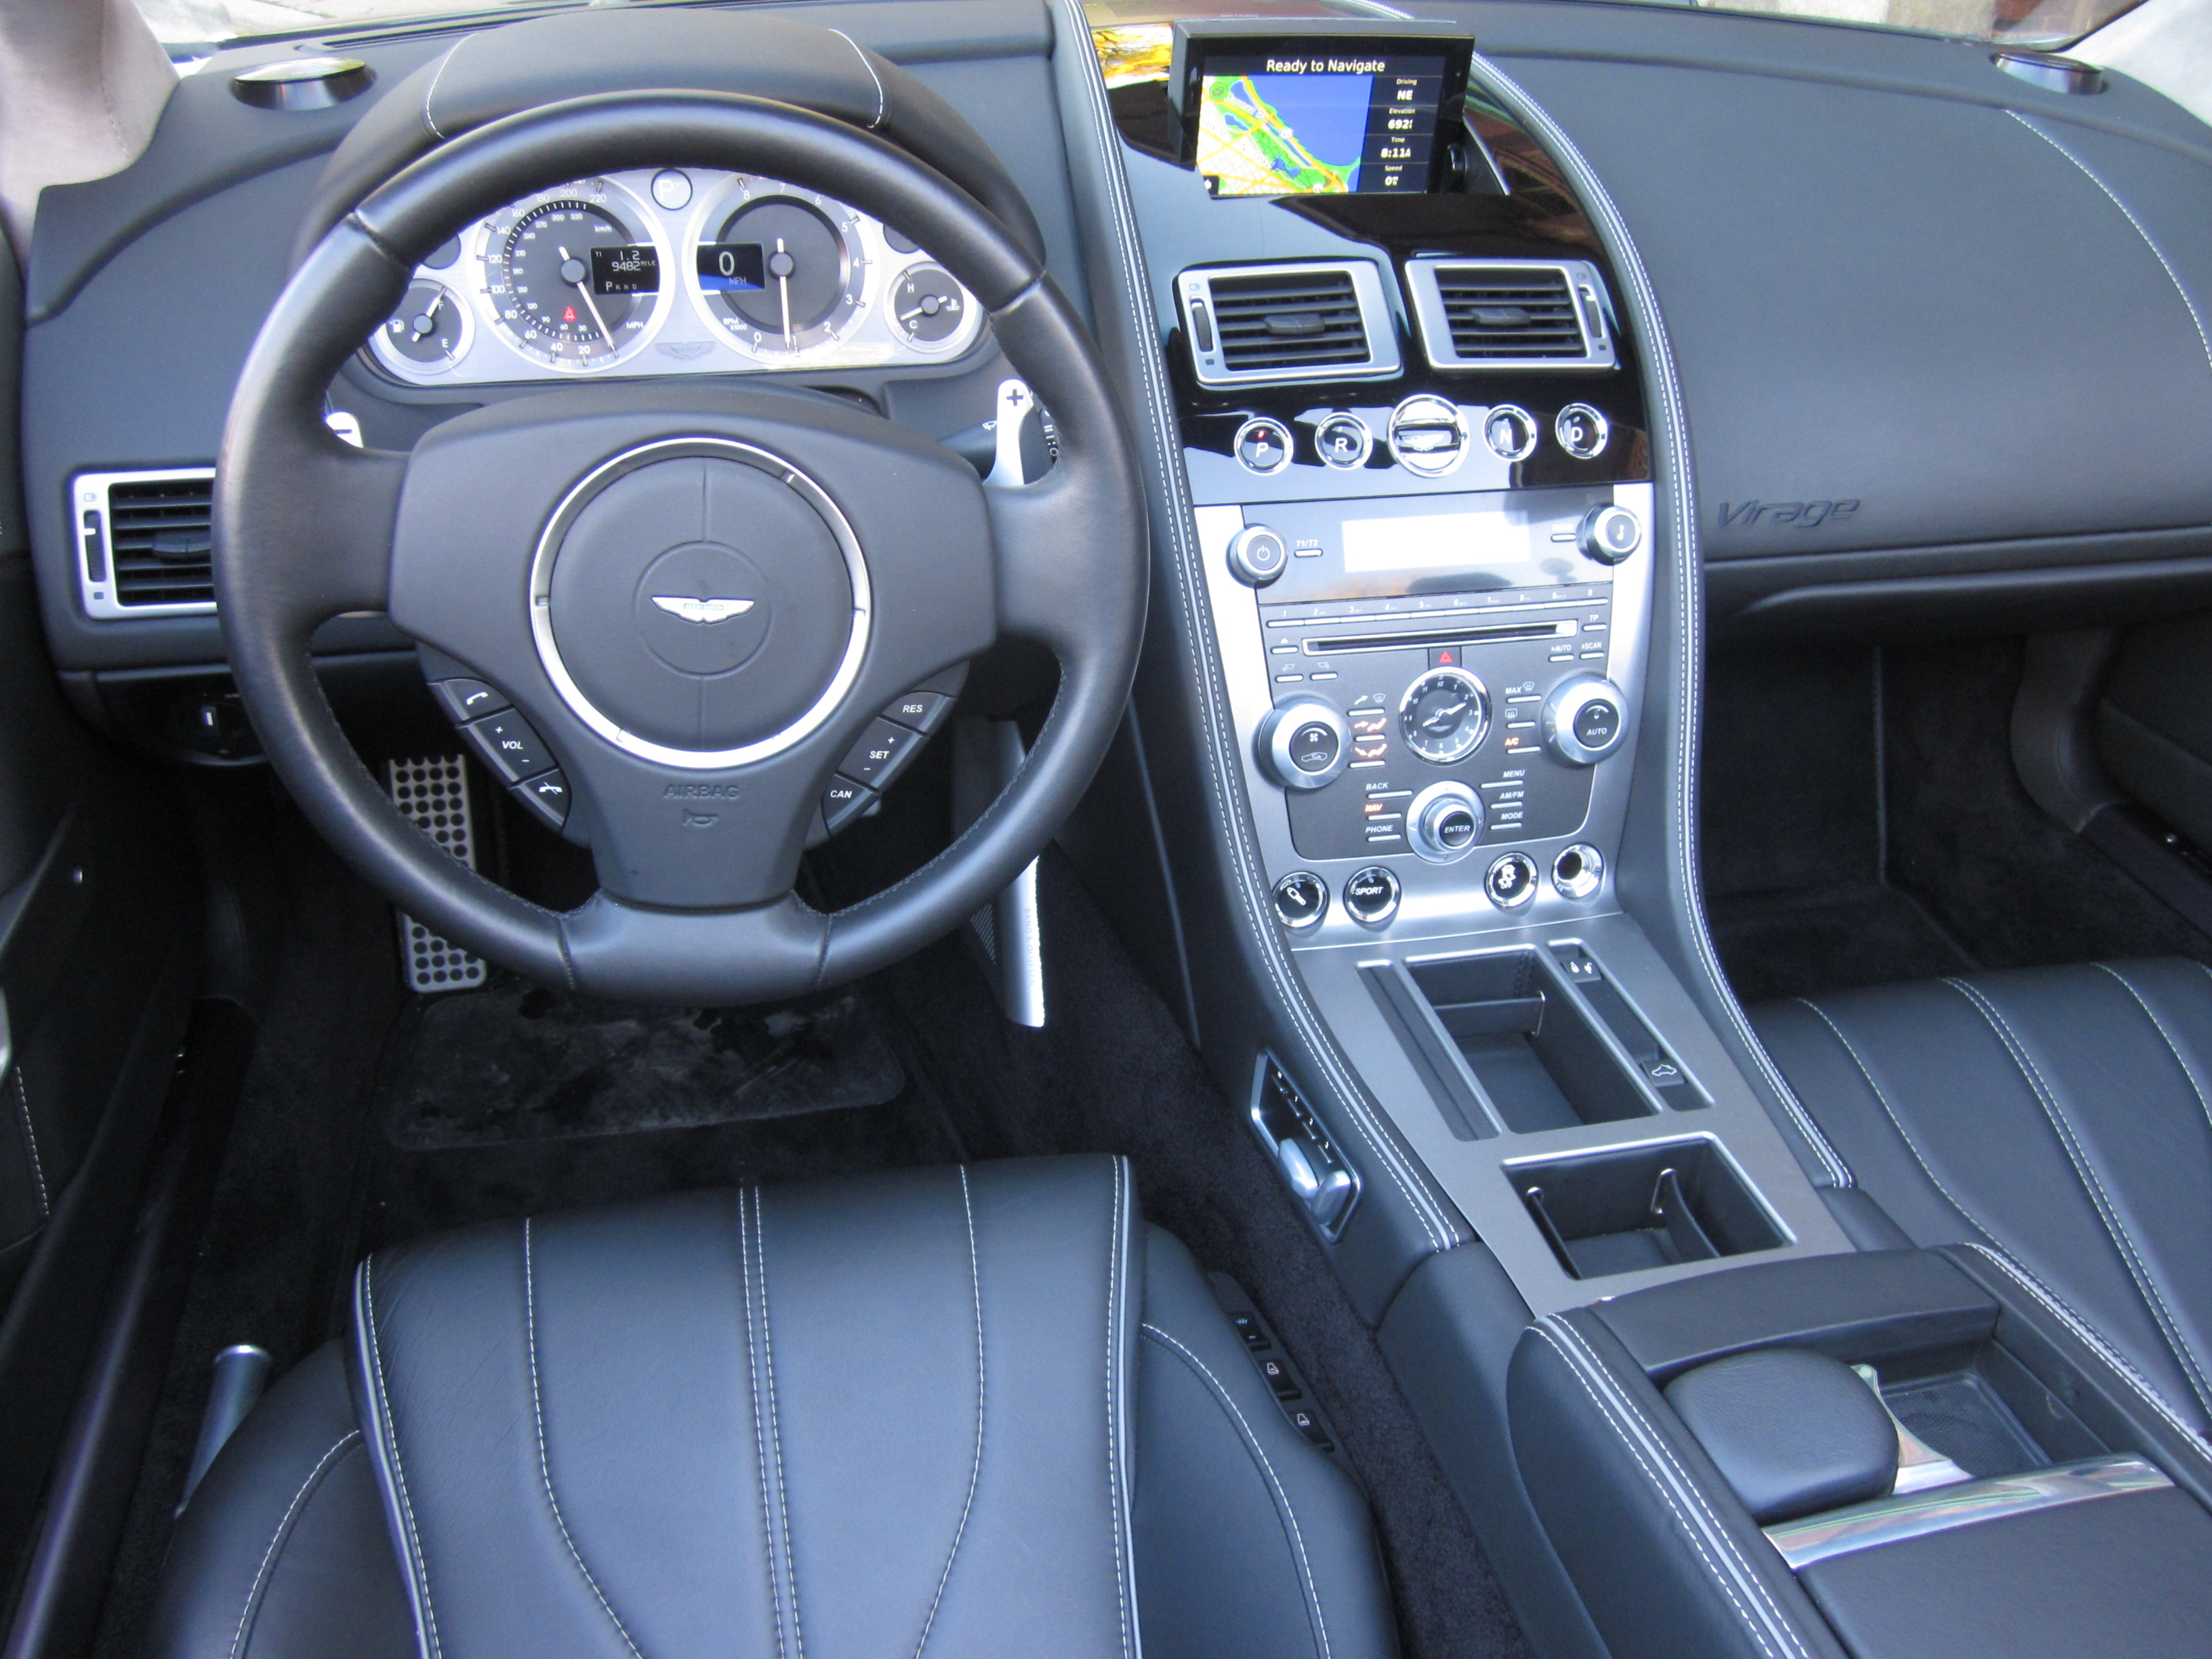 2012 aston martin virage volante select to view enlarged photo